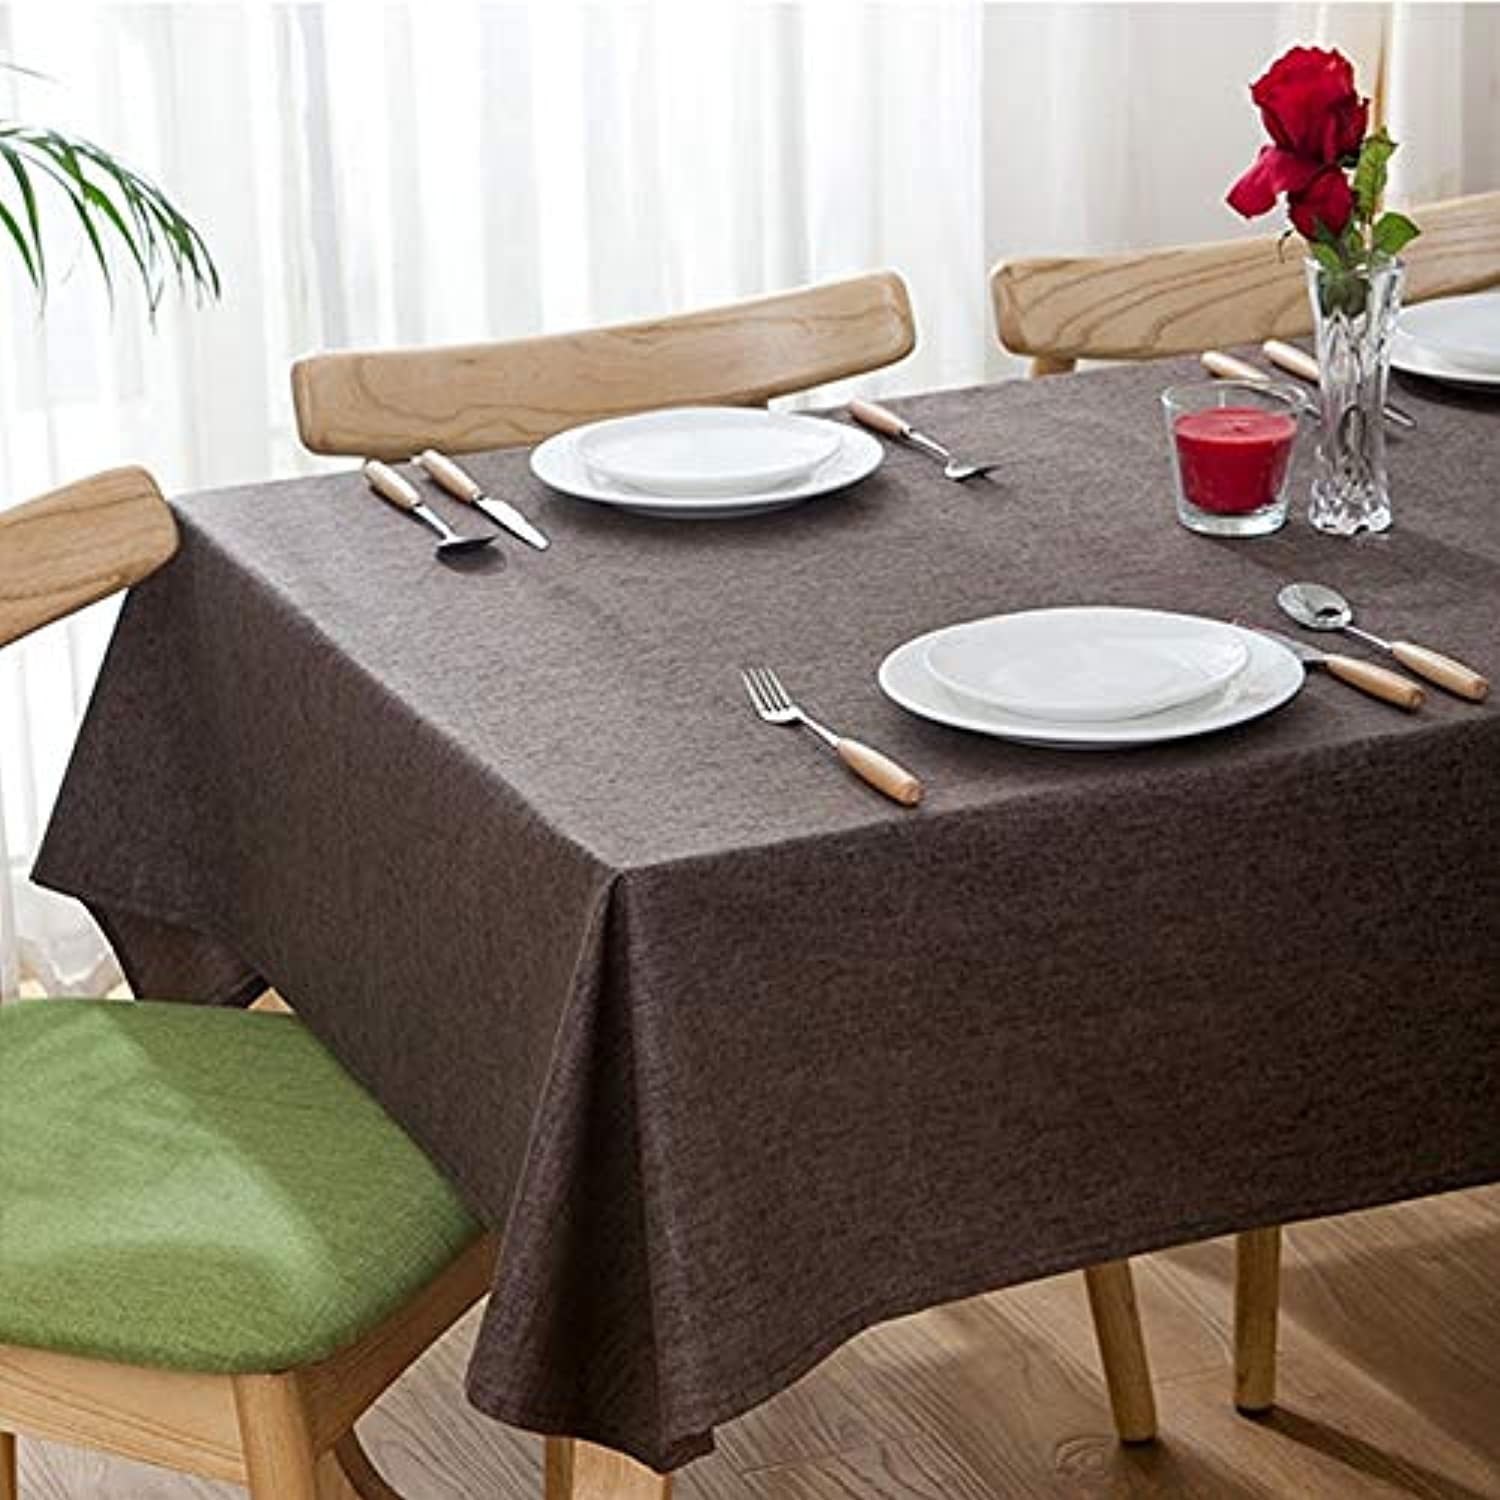 Good-Looking Size  130  250cm,Modern Concise Waterproof Flax Rectangle Home Hotel Table Clot Beautiful (color   Coffee)